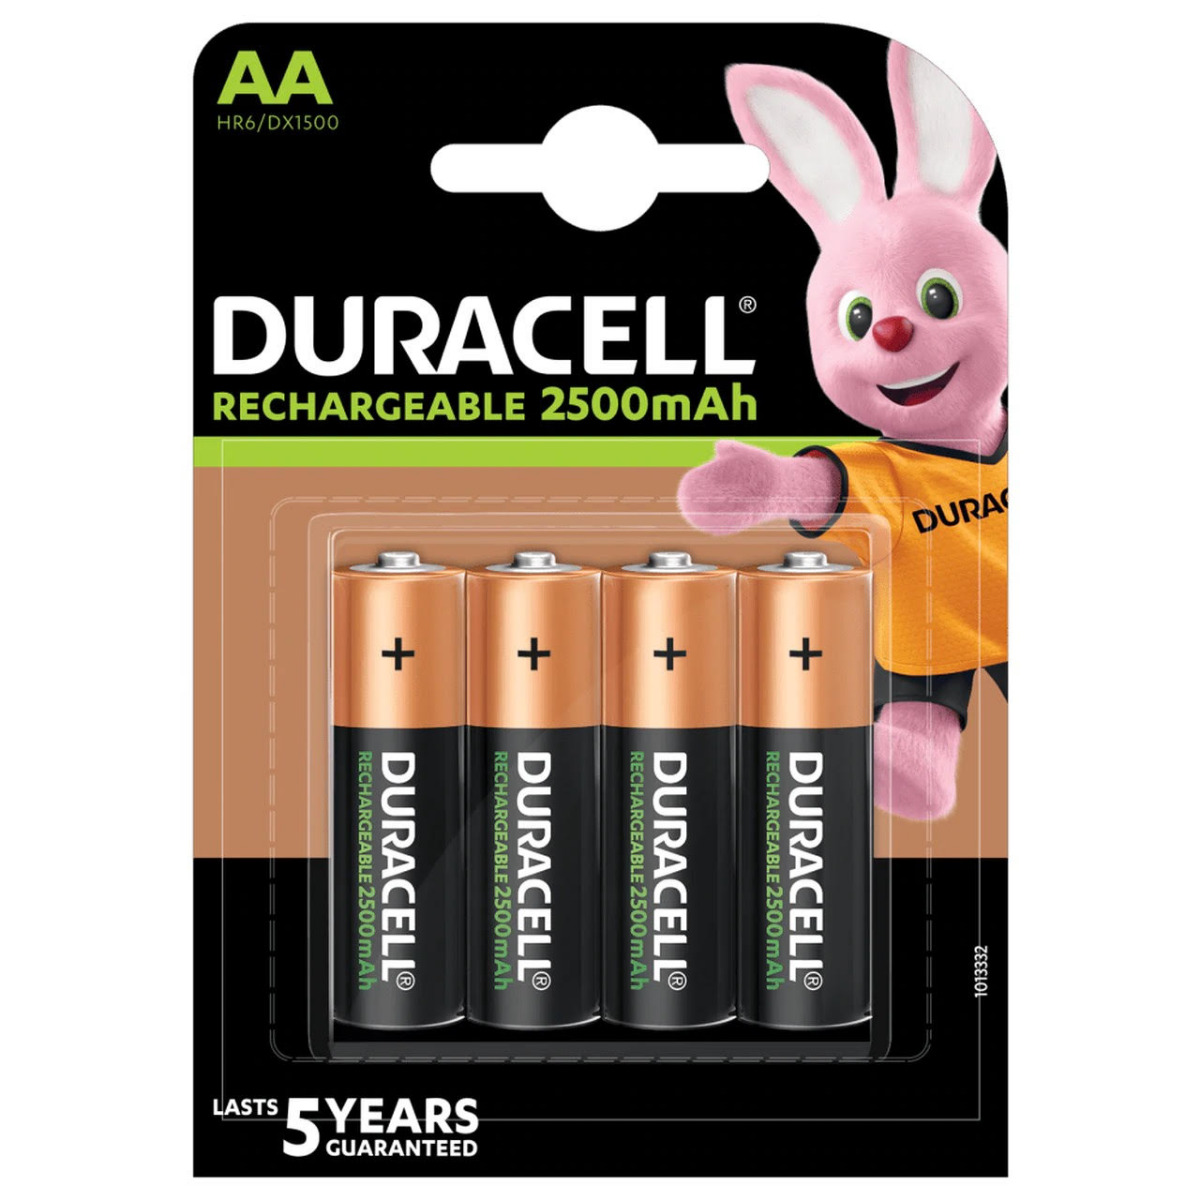 Duracell Rechargeable AA HR6 2500mAh Pre-Charged Rechrageable Batteries | 4 Pack